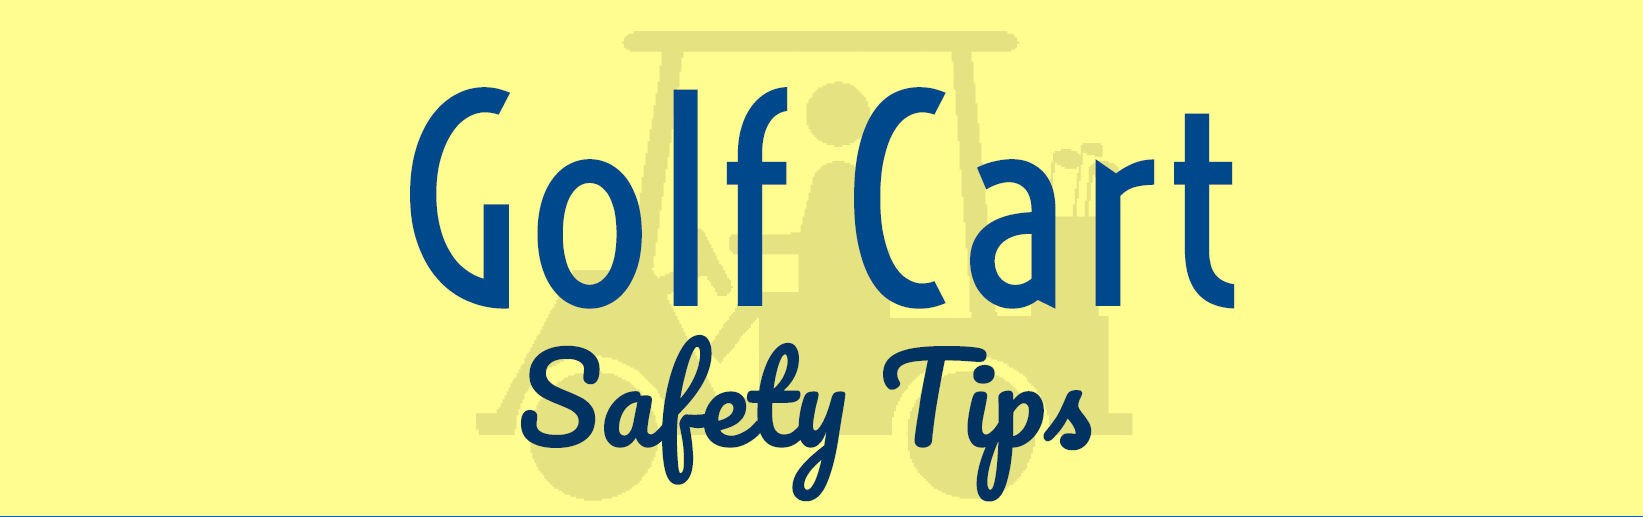 Golf Cart Safety Tips header